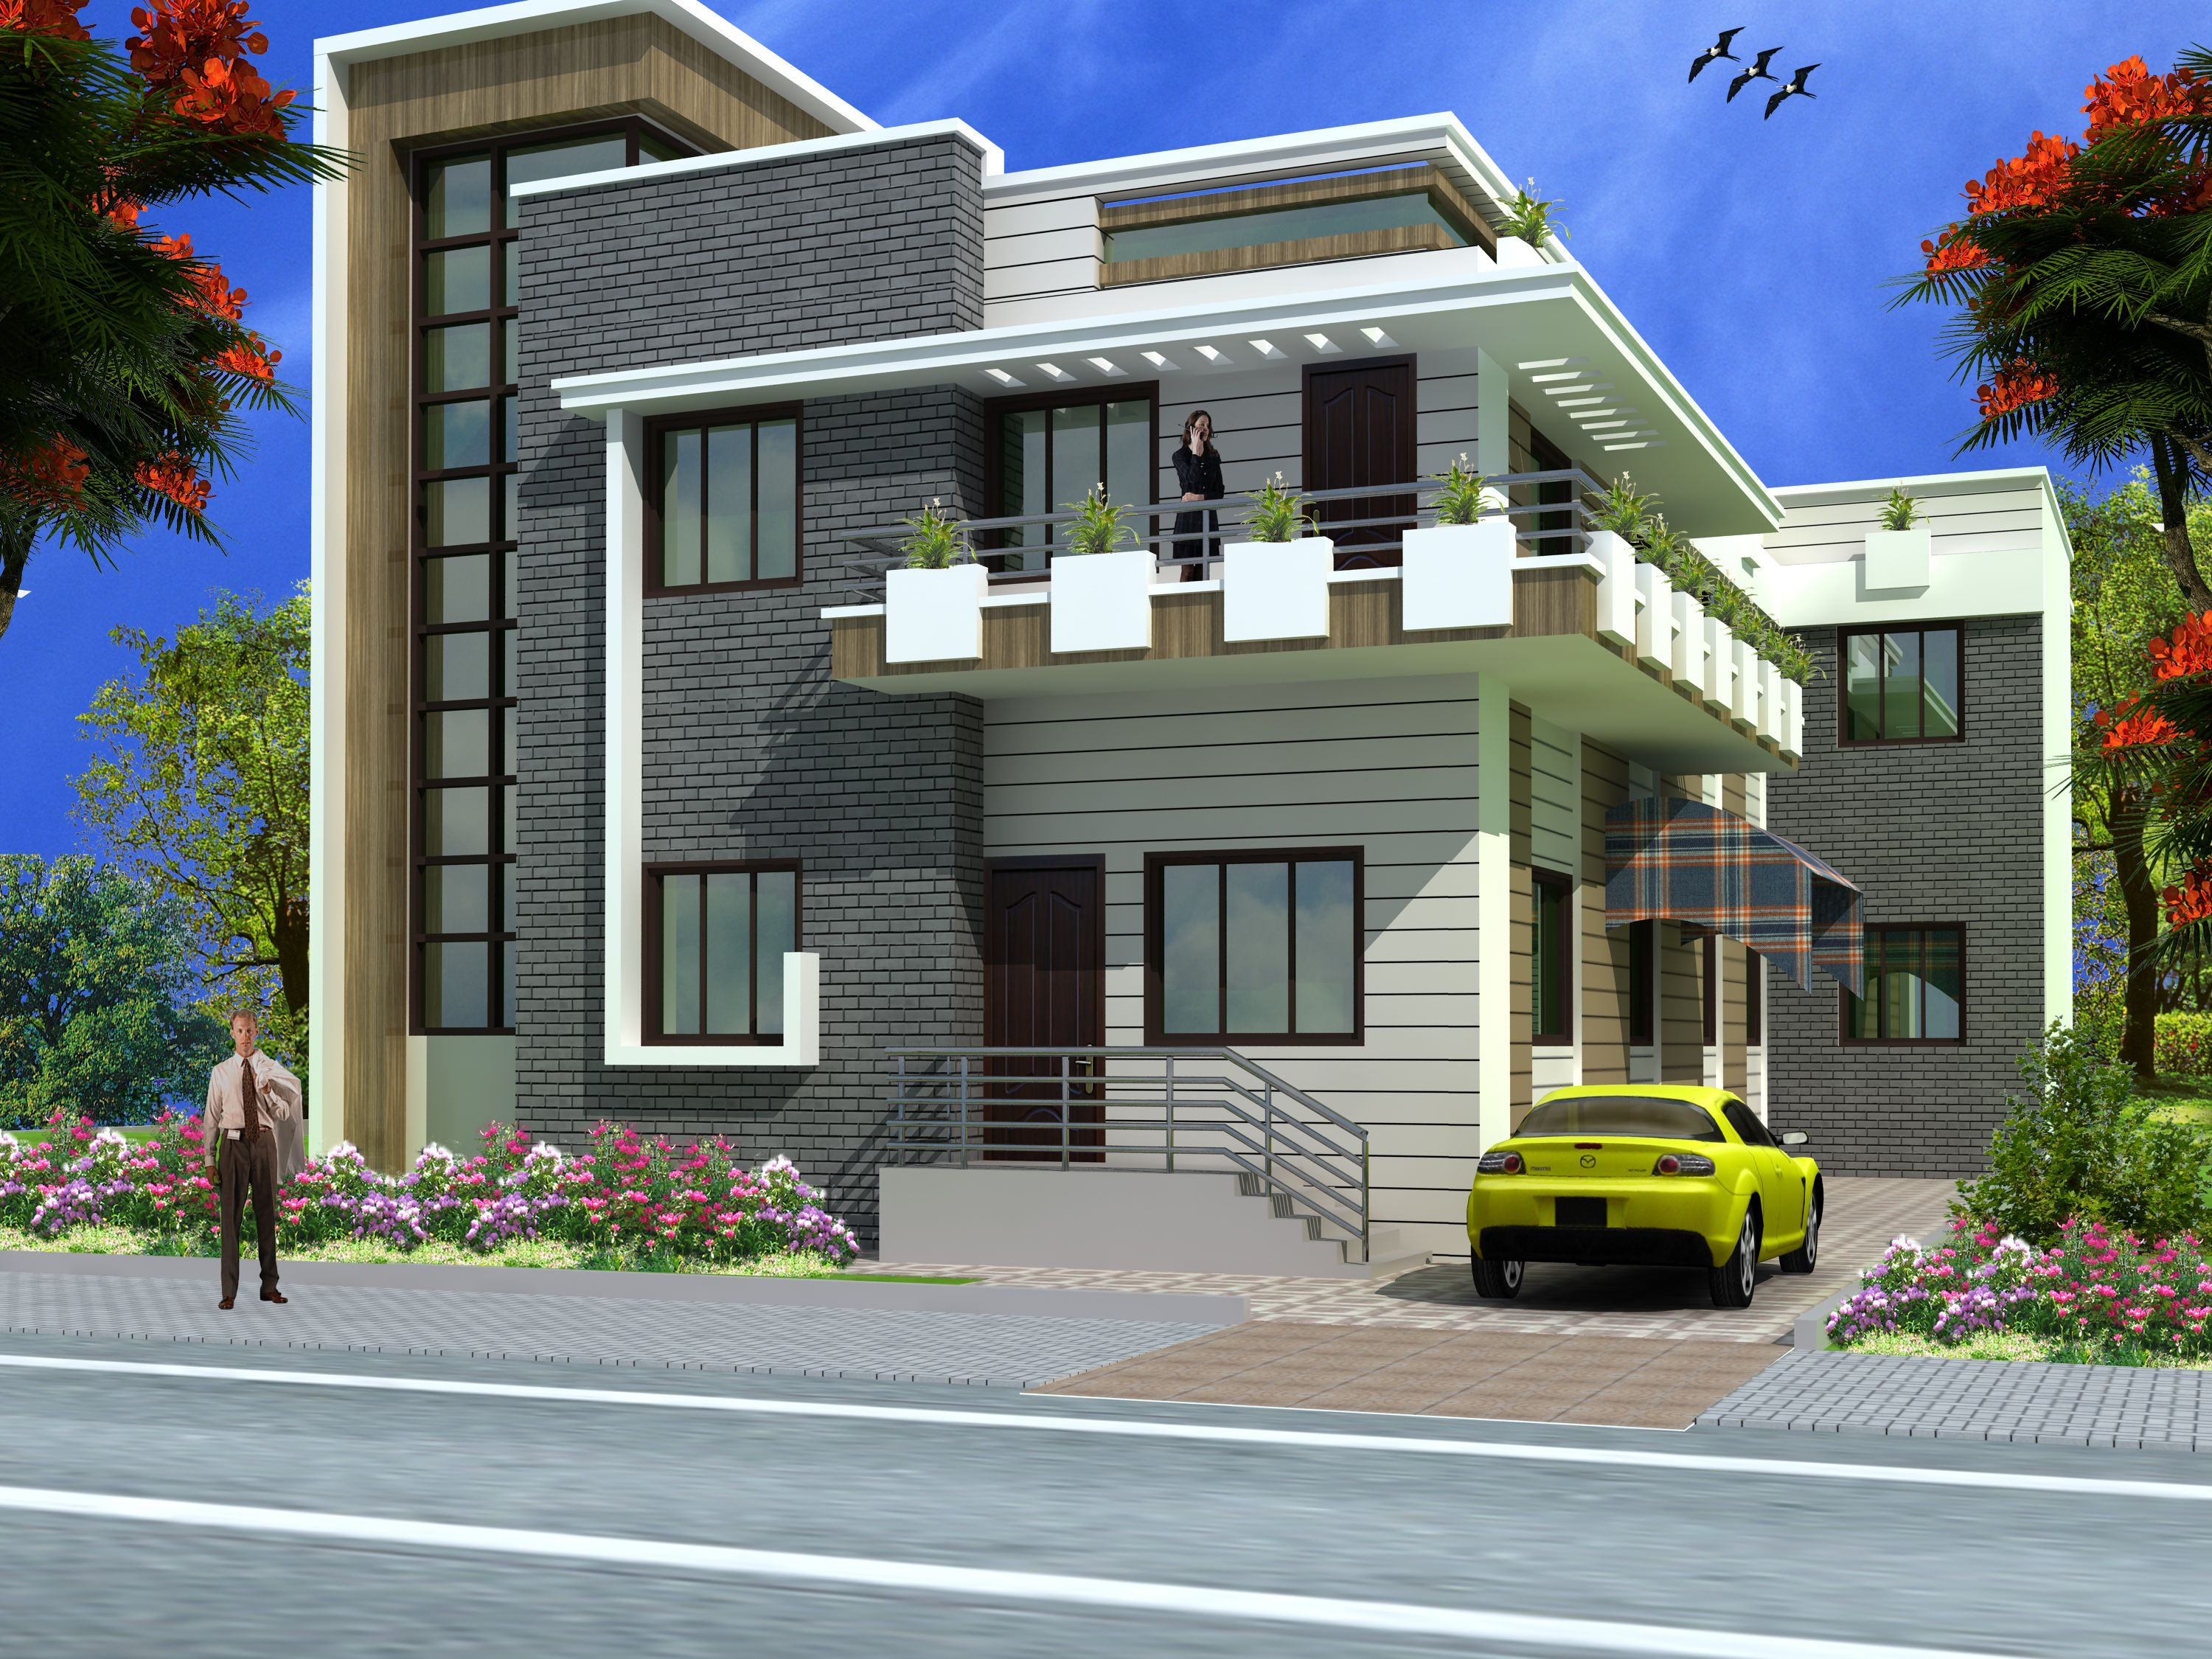 Modern duplex 2 floor house design click on this link for House front model design